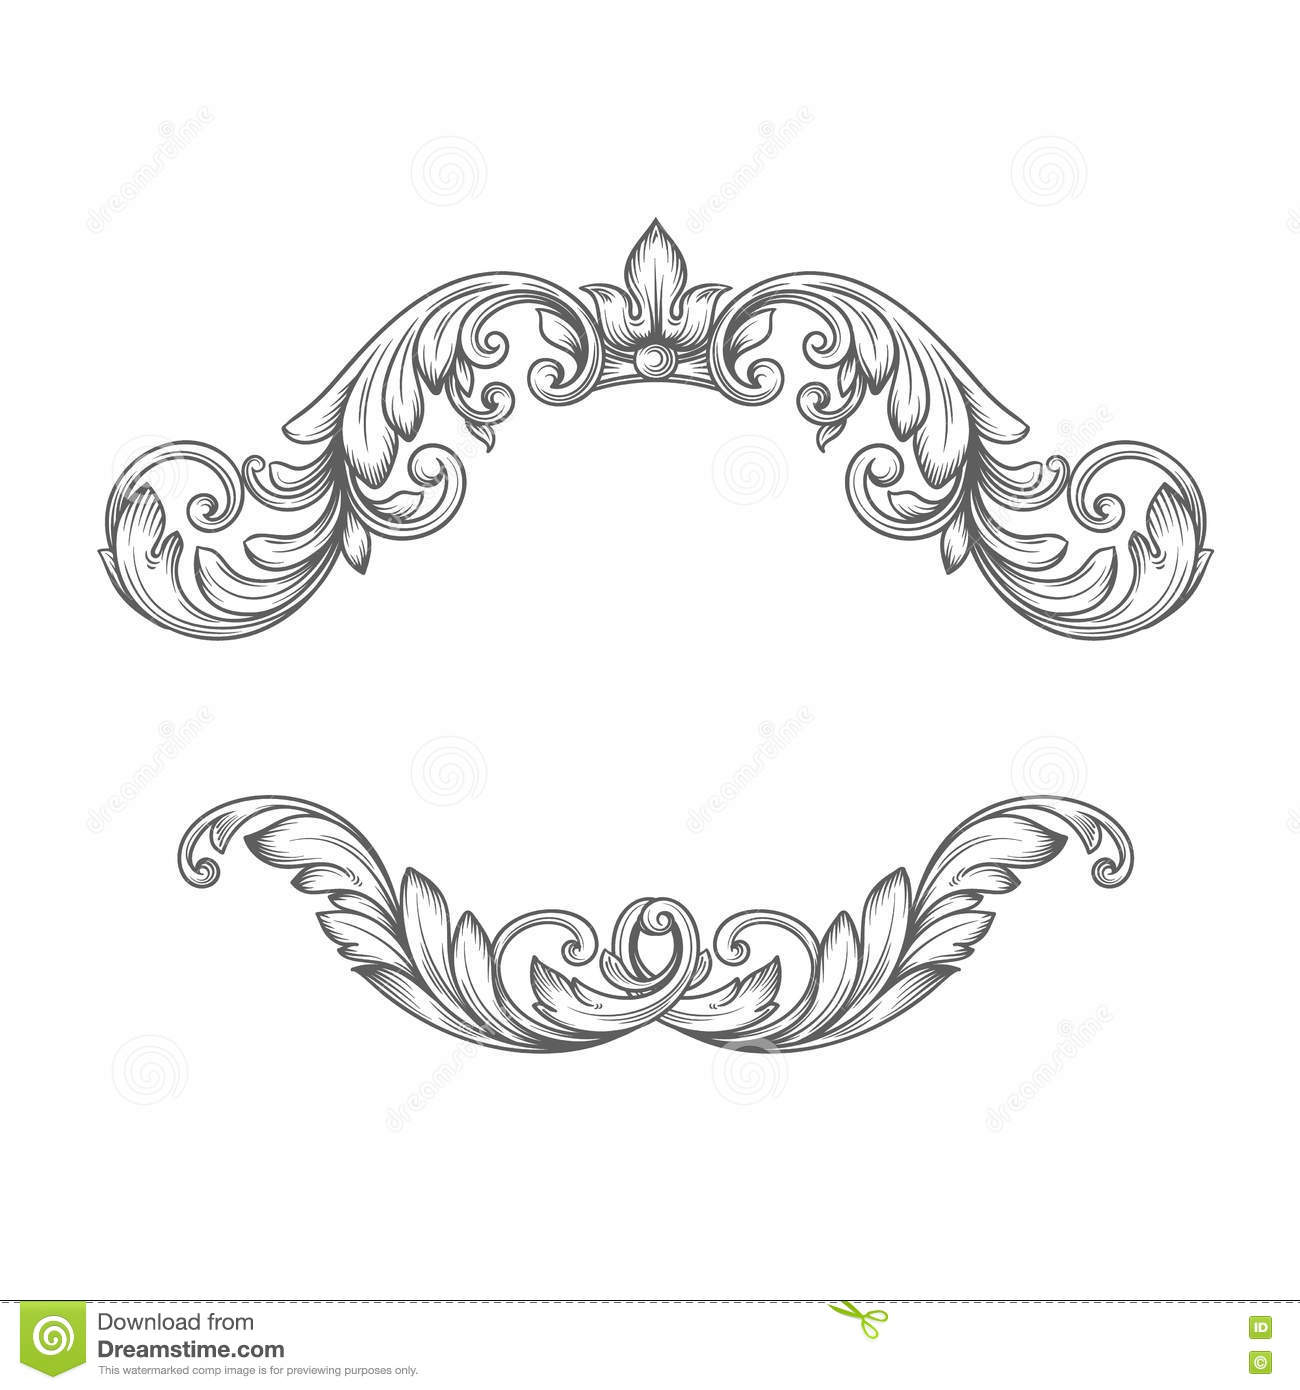 Vintage label frame design elements stock vector